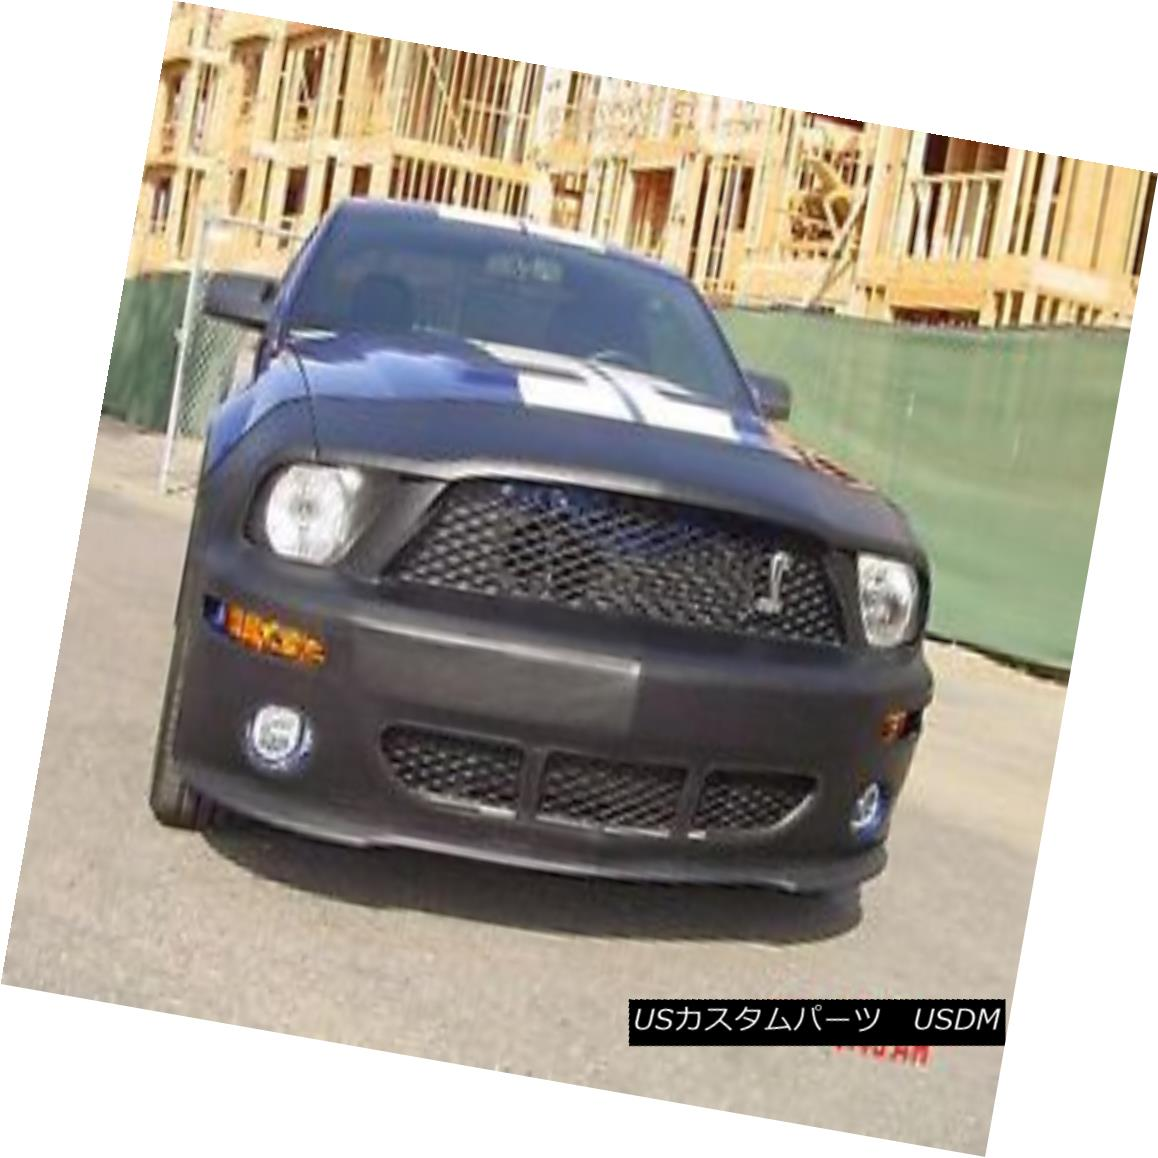 フルブラ ノーズブラ Colgan Front End Mask Bra 2pc. Fits Ford Mustang Shelby GT500 2007-2009 W/O TAG コルガンフロントエンドマスクブラ2pc Ford Mustang Shelby GT500 2007-2009 W / O TAGに適合